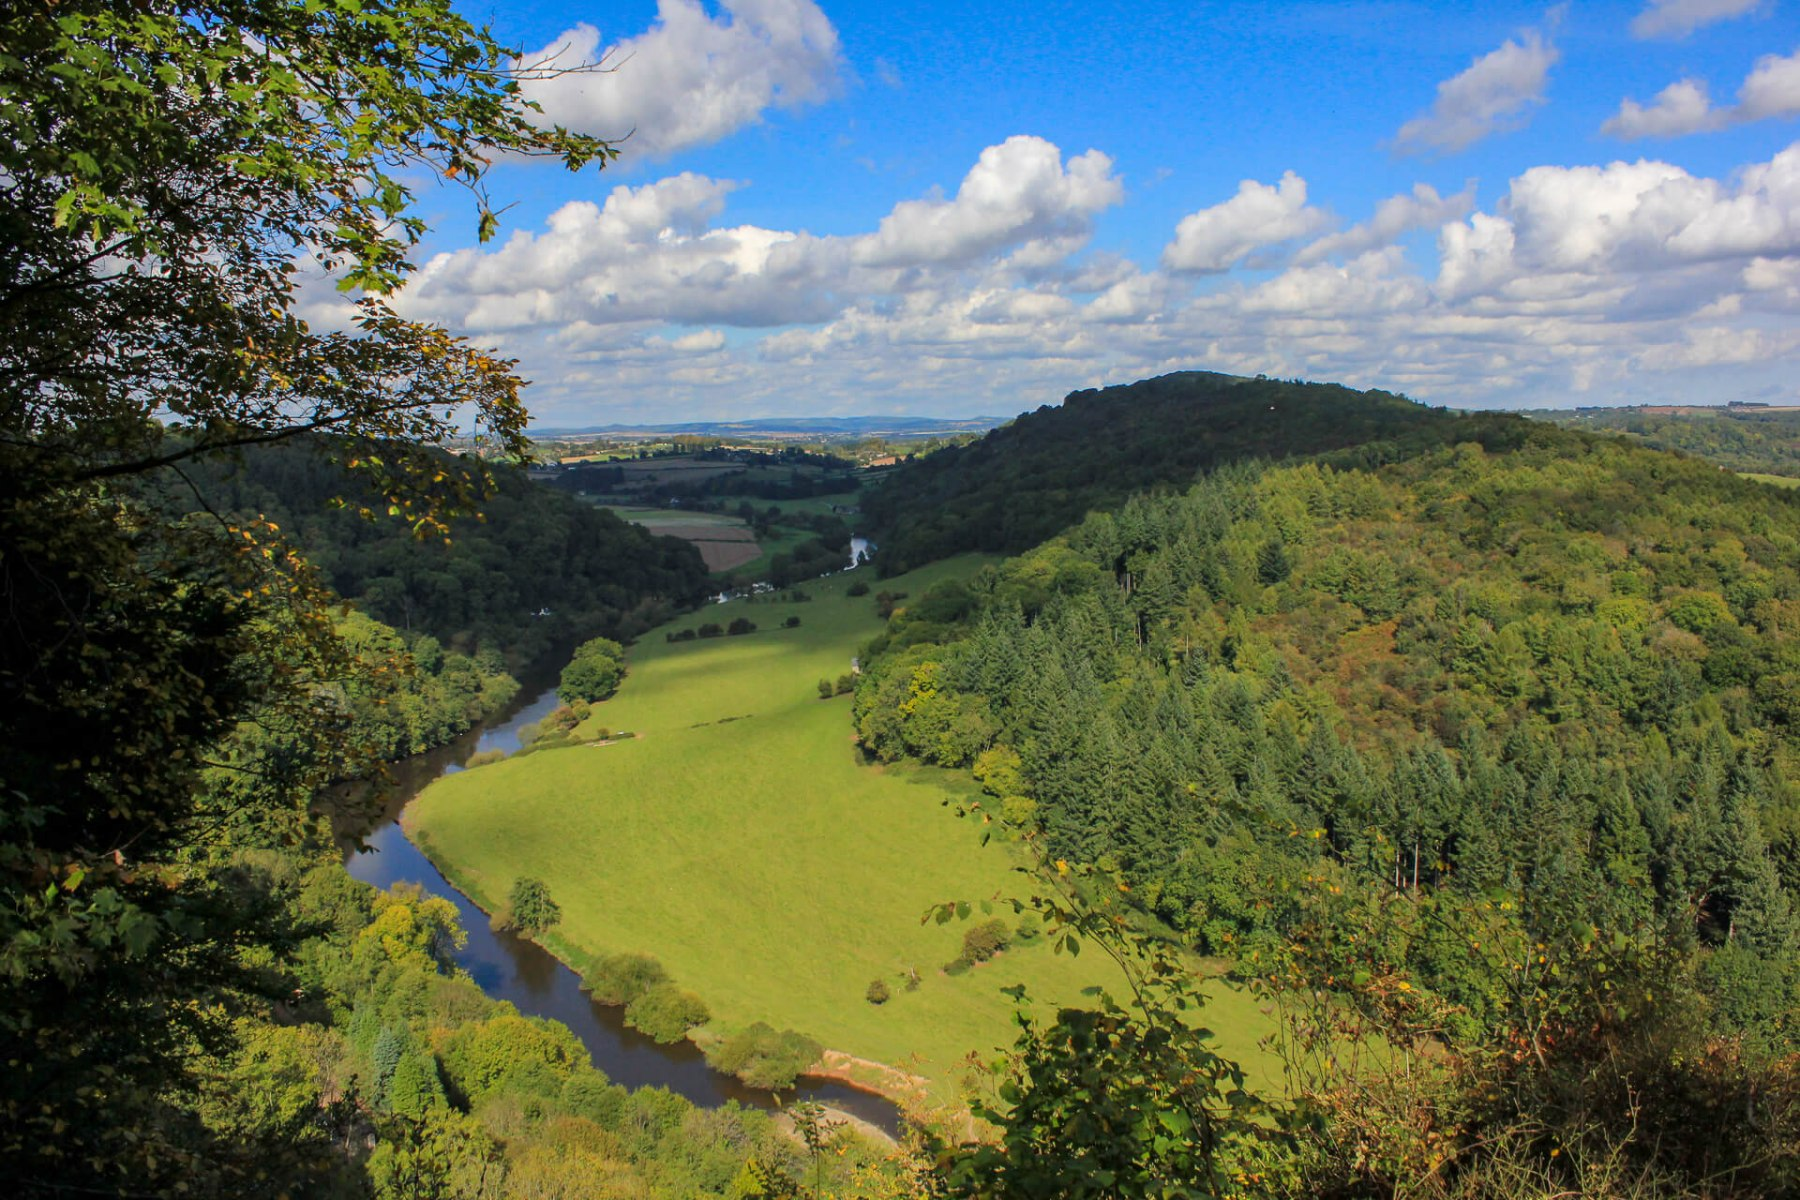 view-of-wye-river-and-woodlands-from-second-view-point-wye-valley